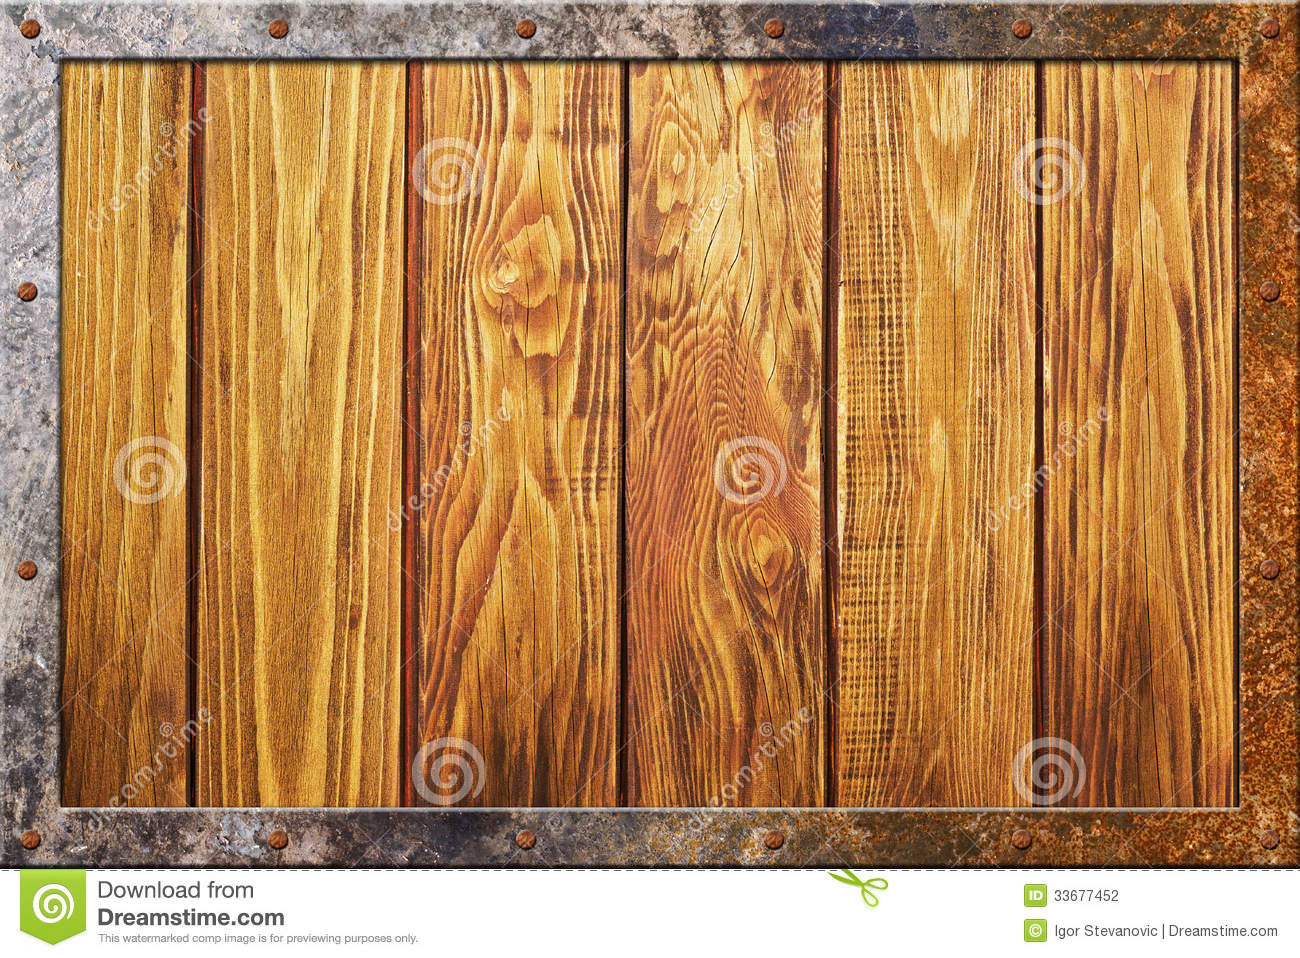 Wood Frame Texture : Wood Texture With Metal Frame Stock Photography - Image: 33677452